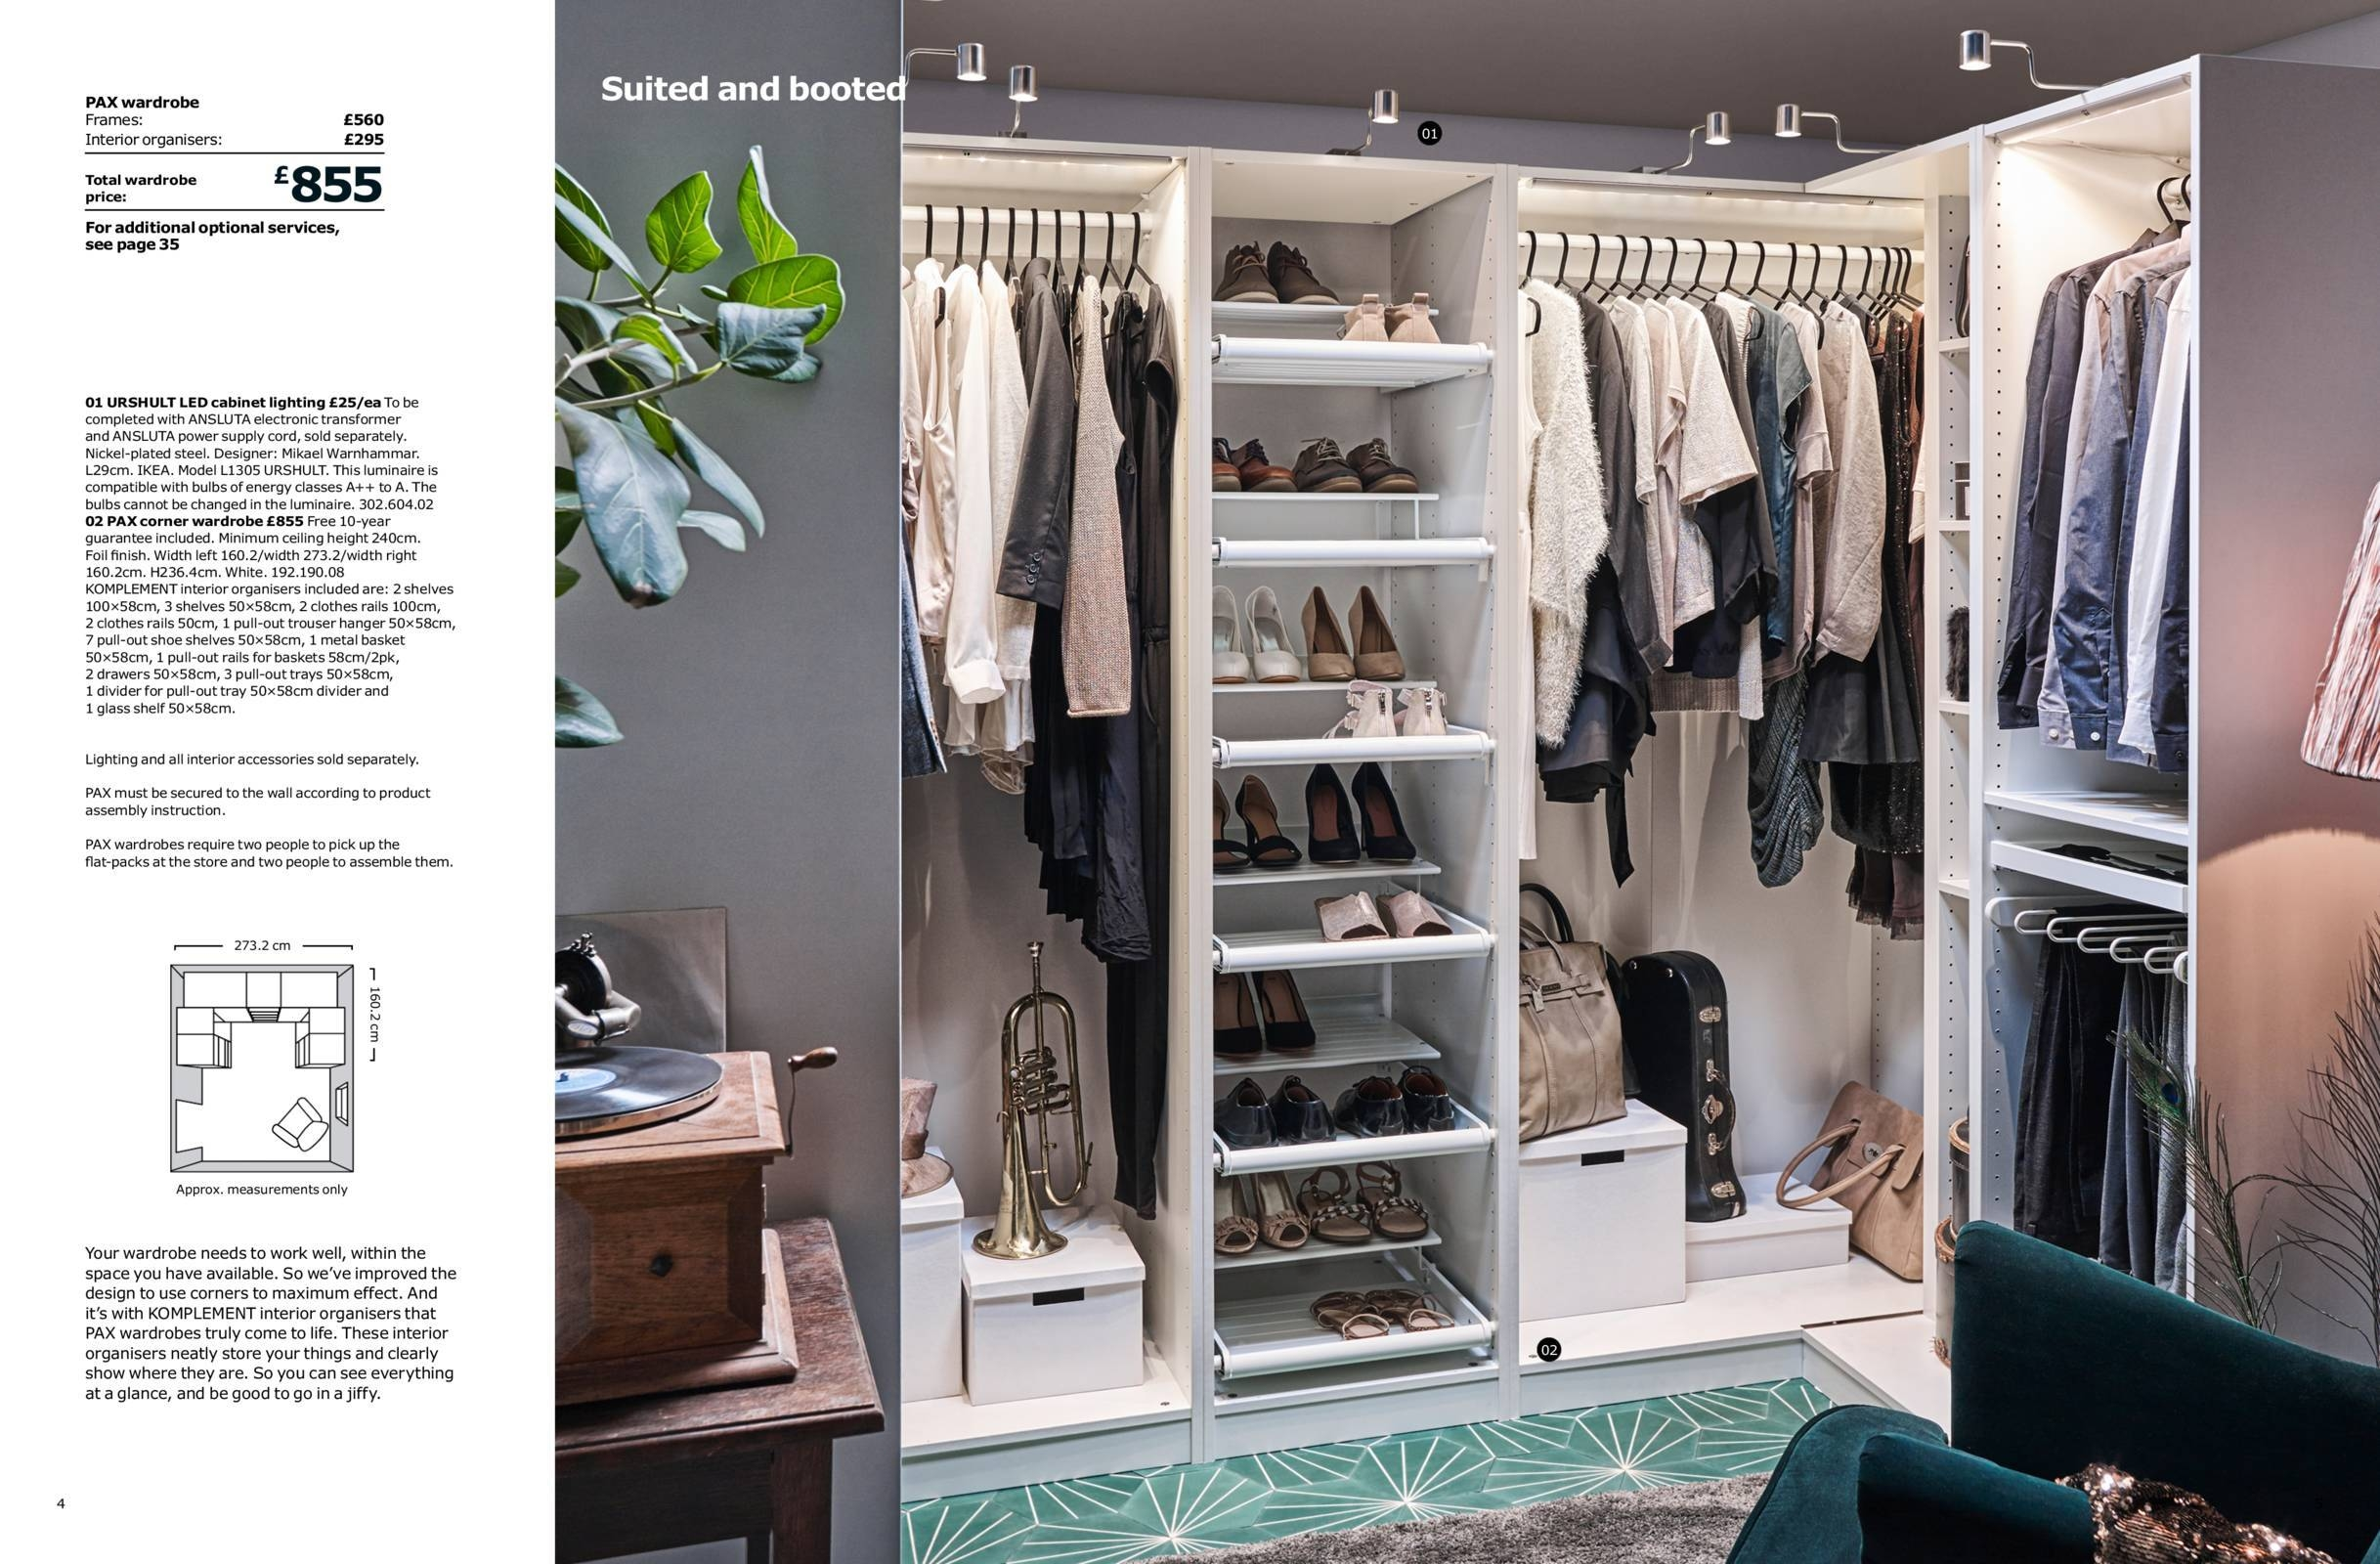 Wardrobe Brochure 2018 intended for Where To  Wardrobes (Image 12 of 15)